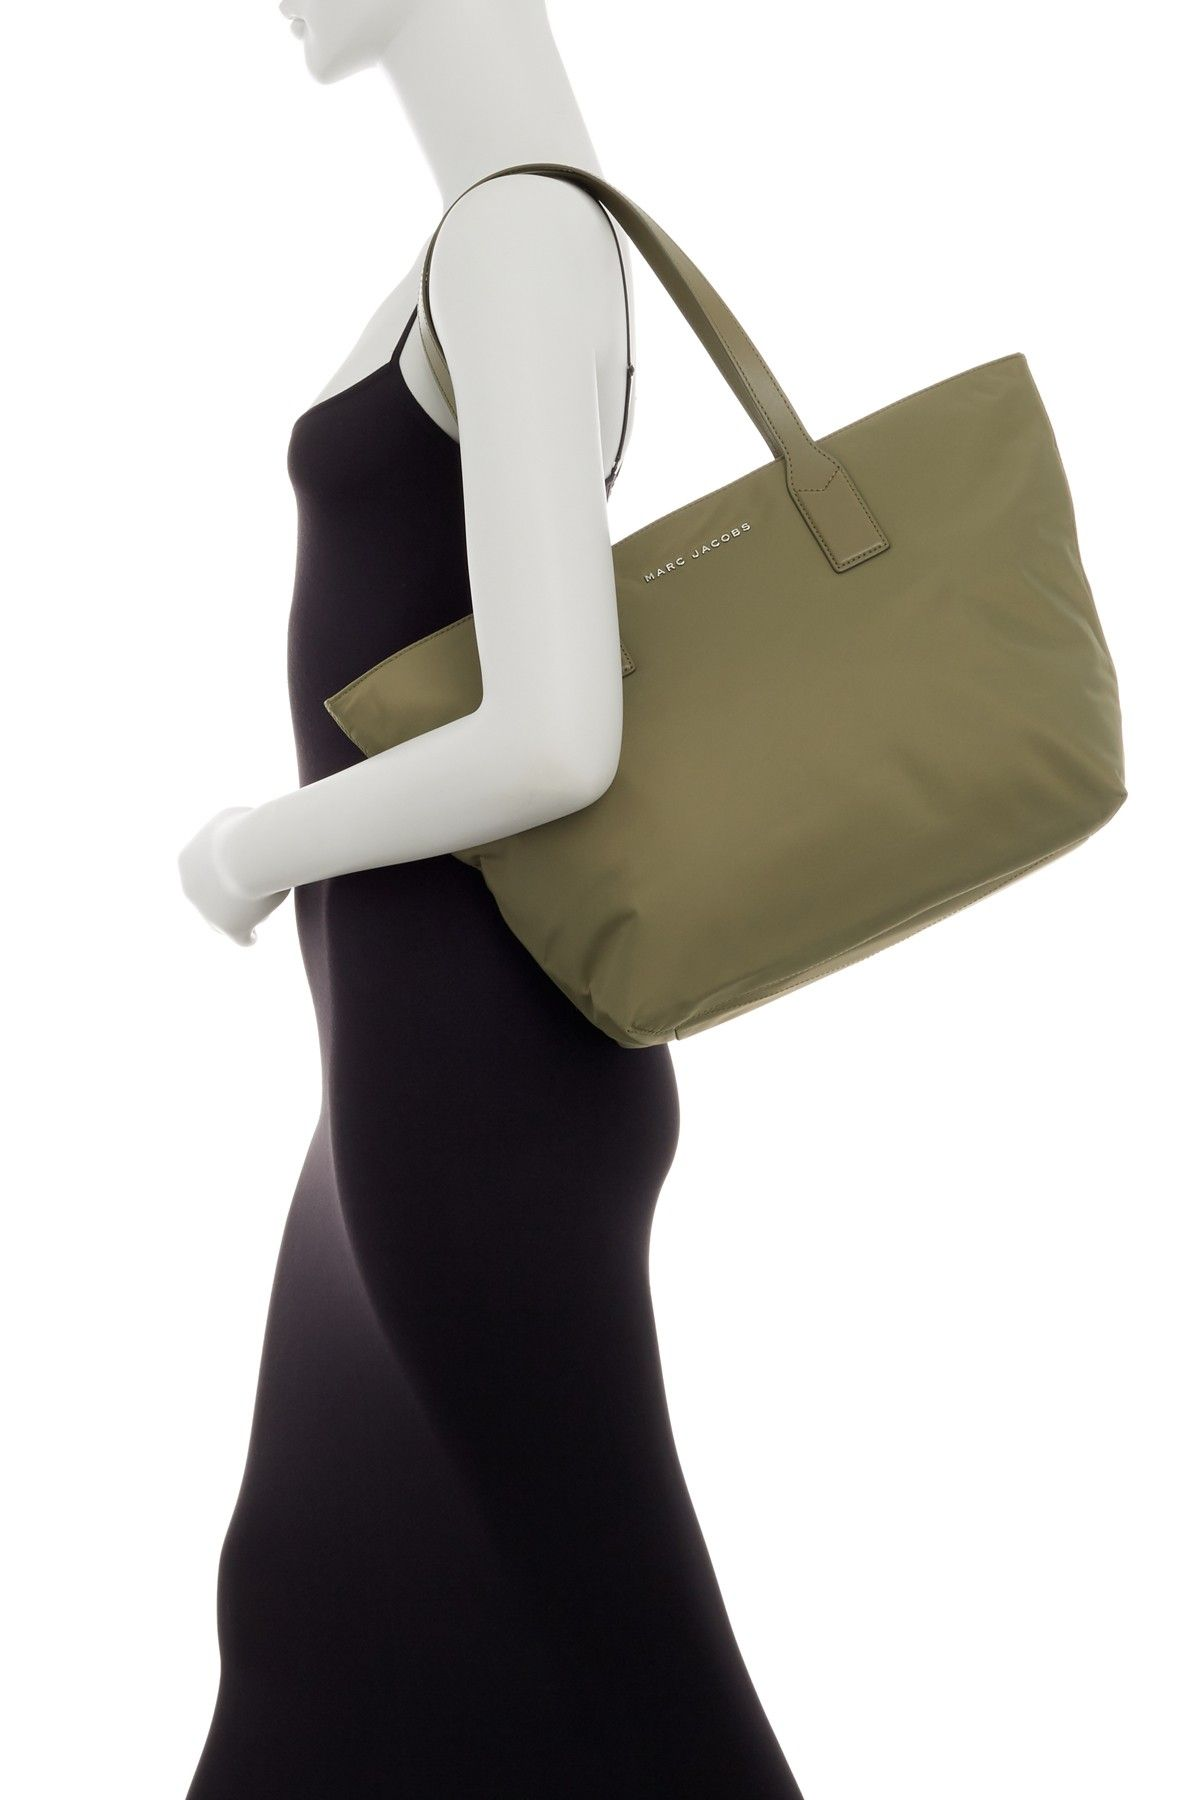 85aa89a8a8f4 Nylon Wingman Tote Bag by Marc Jacobs on  nordstrom rack